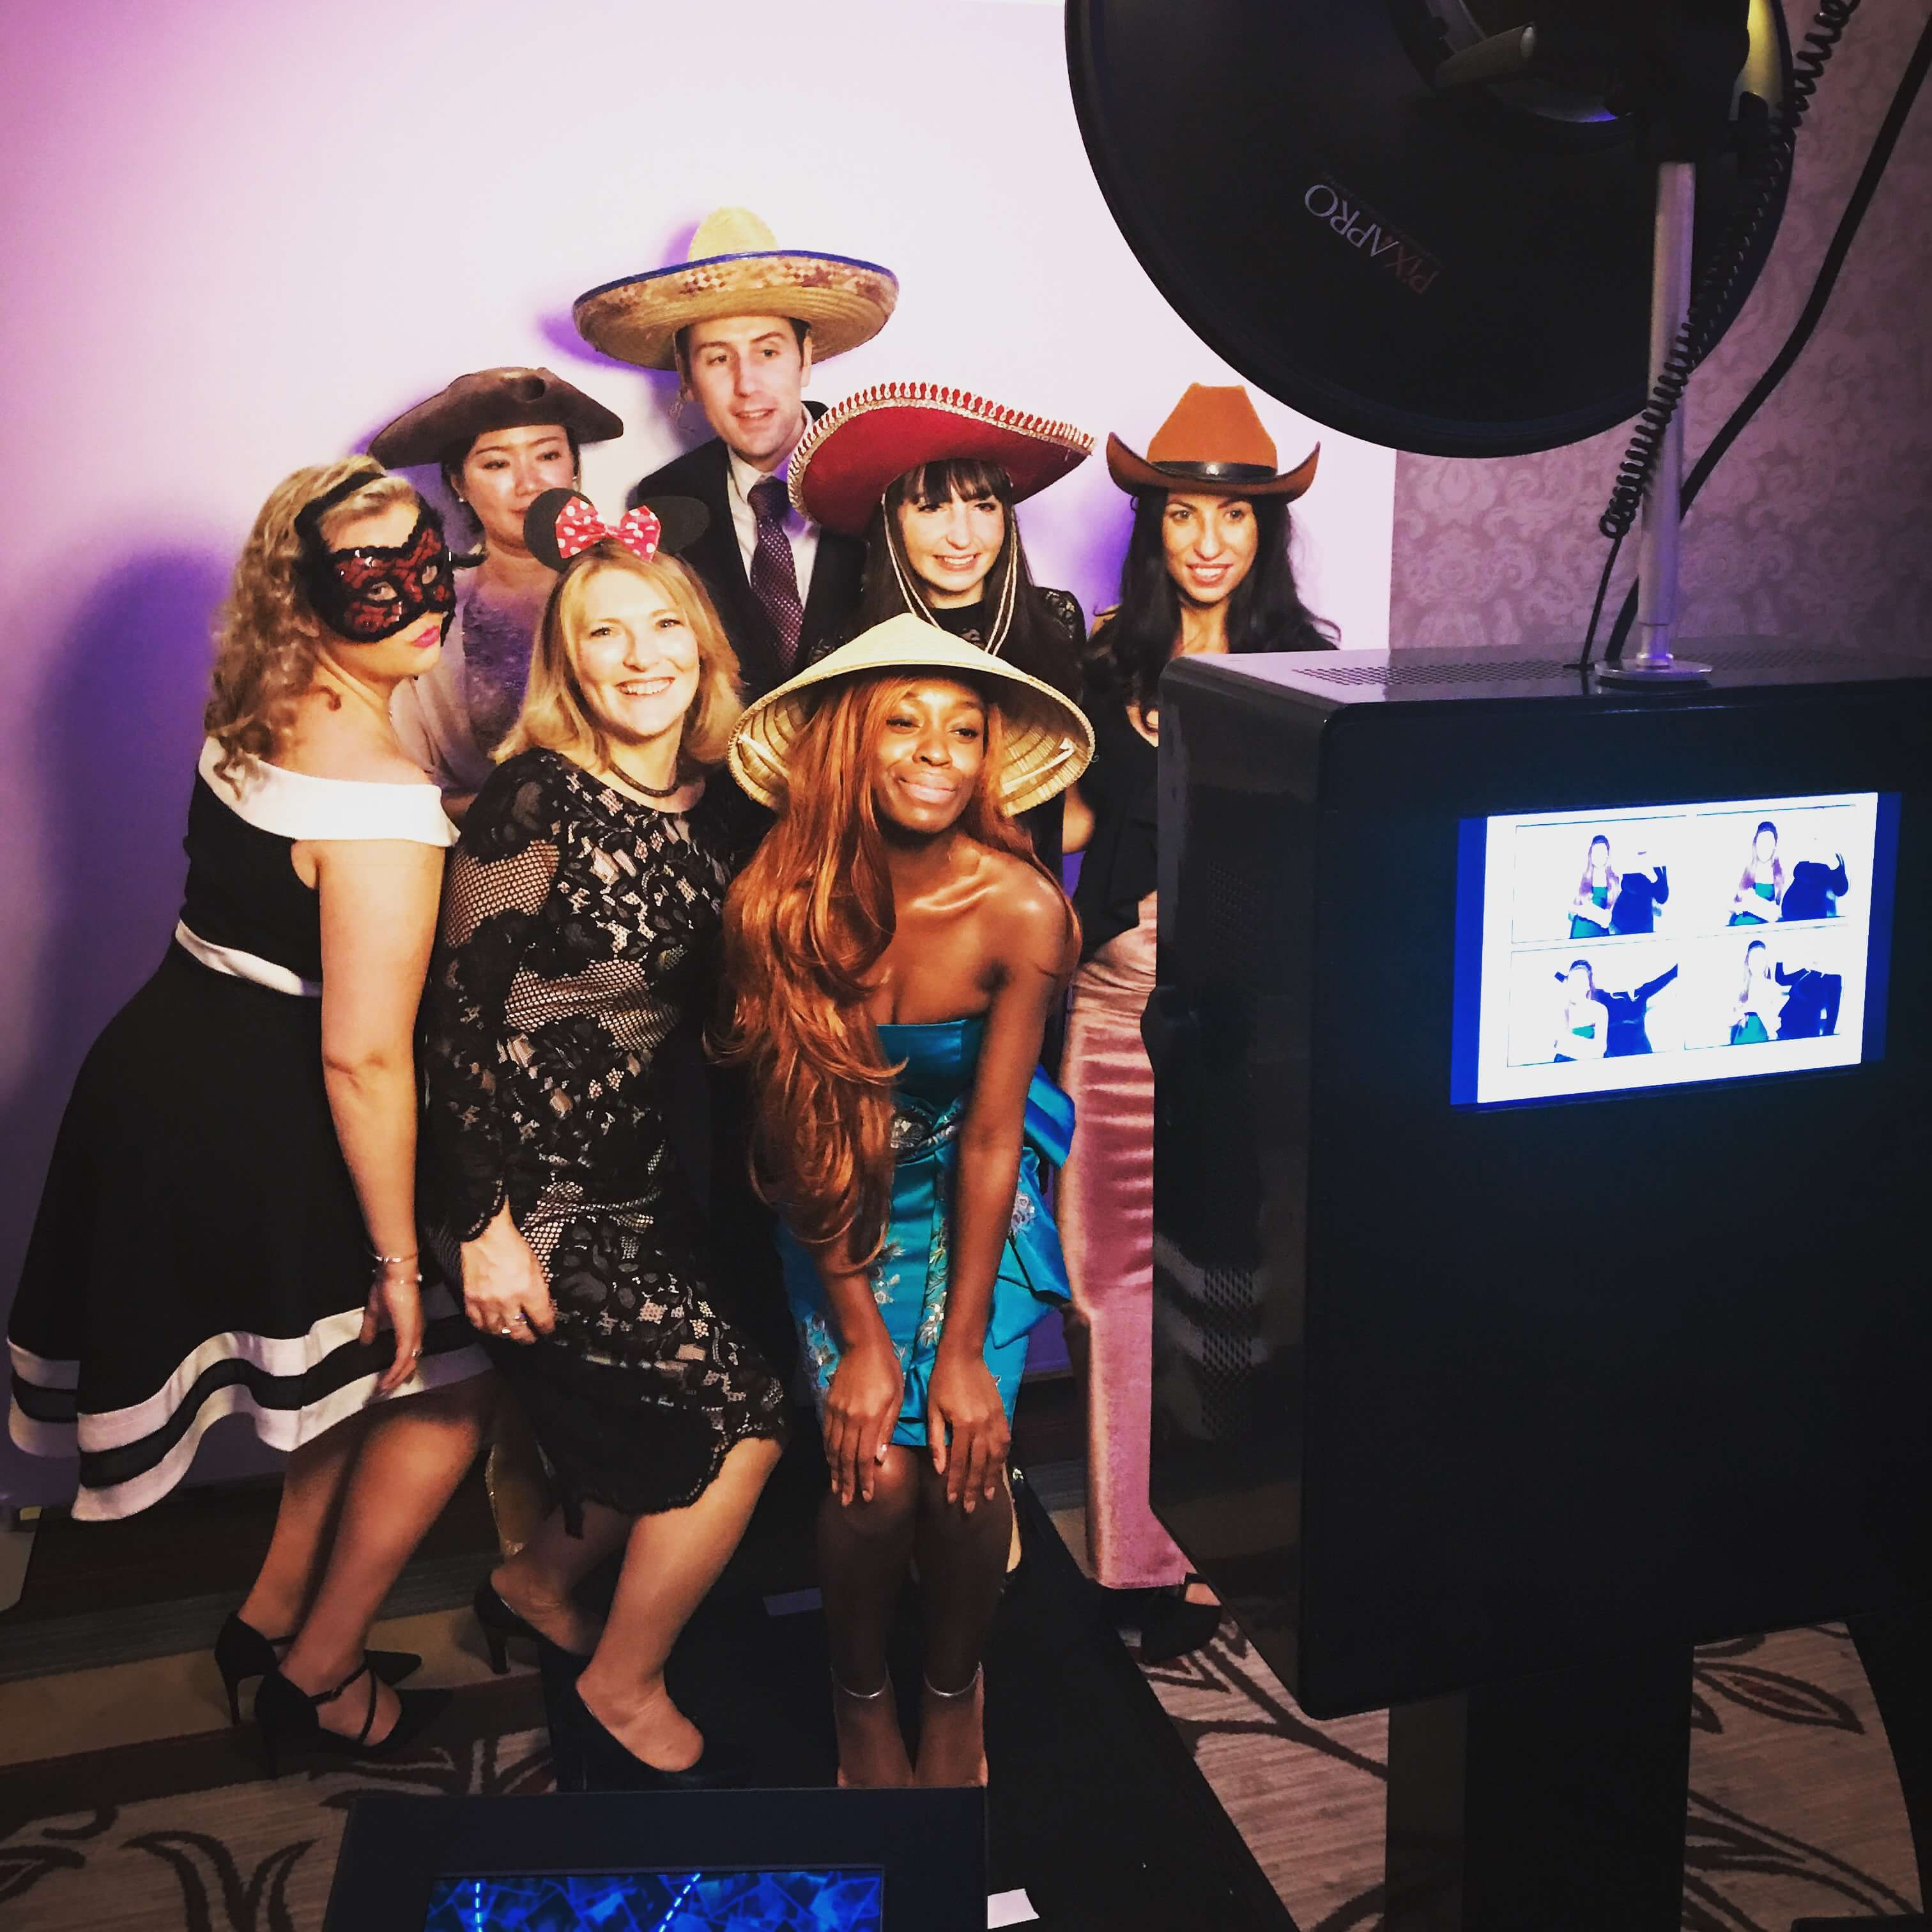 photo booth hire prices